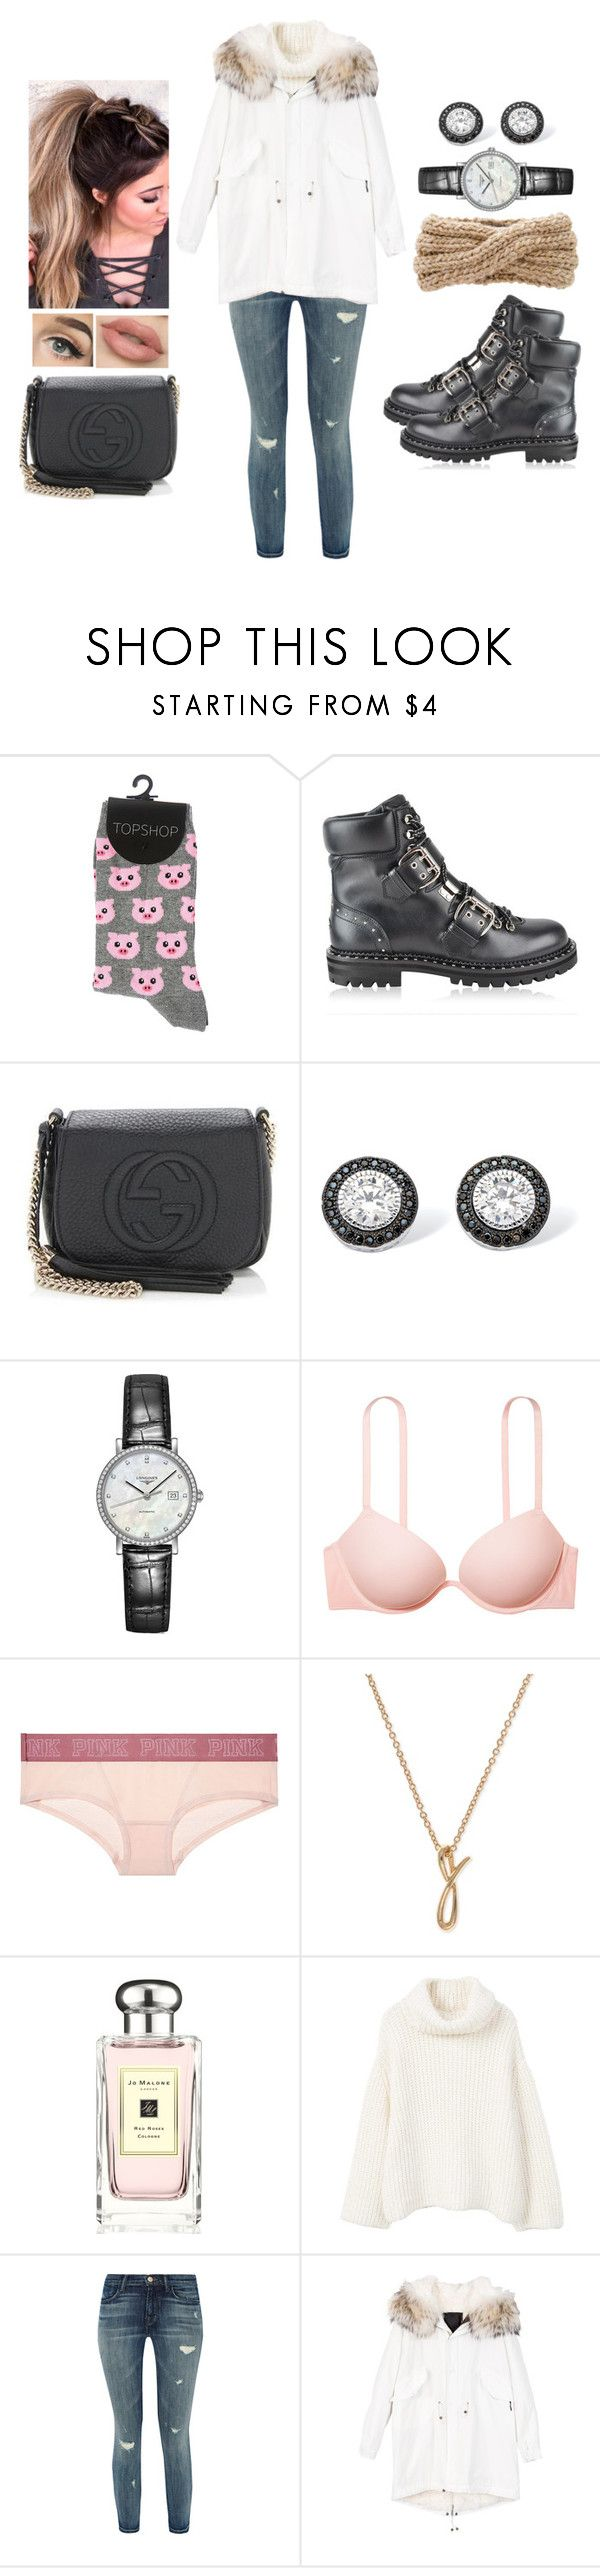 """""""Bundle Up!"""" by teodoramaria98 ❤ liked on Polyvore featuring Jimmy Choo, Gucci, Palm Beach Jewelry, Longines, Victoria's Secret, Anne Klein, Jo Malone, MANGO, J Brand and Eugenia Kim"""